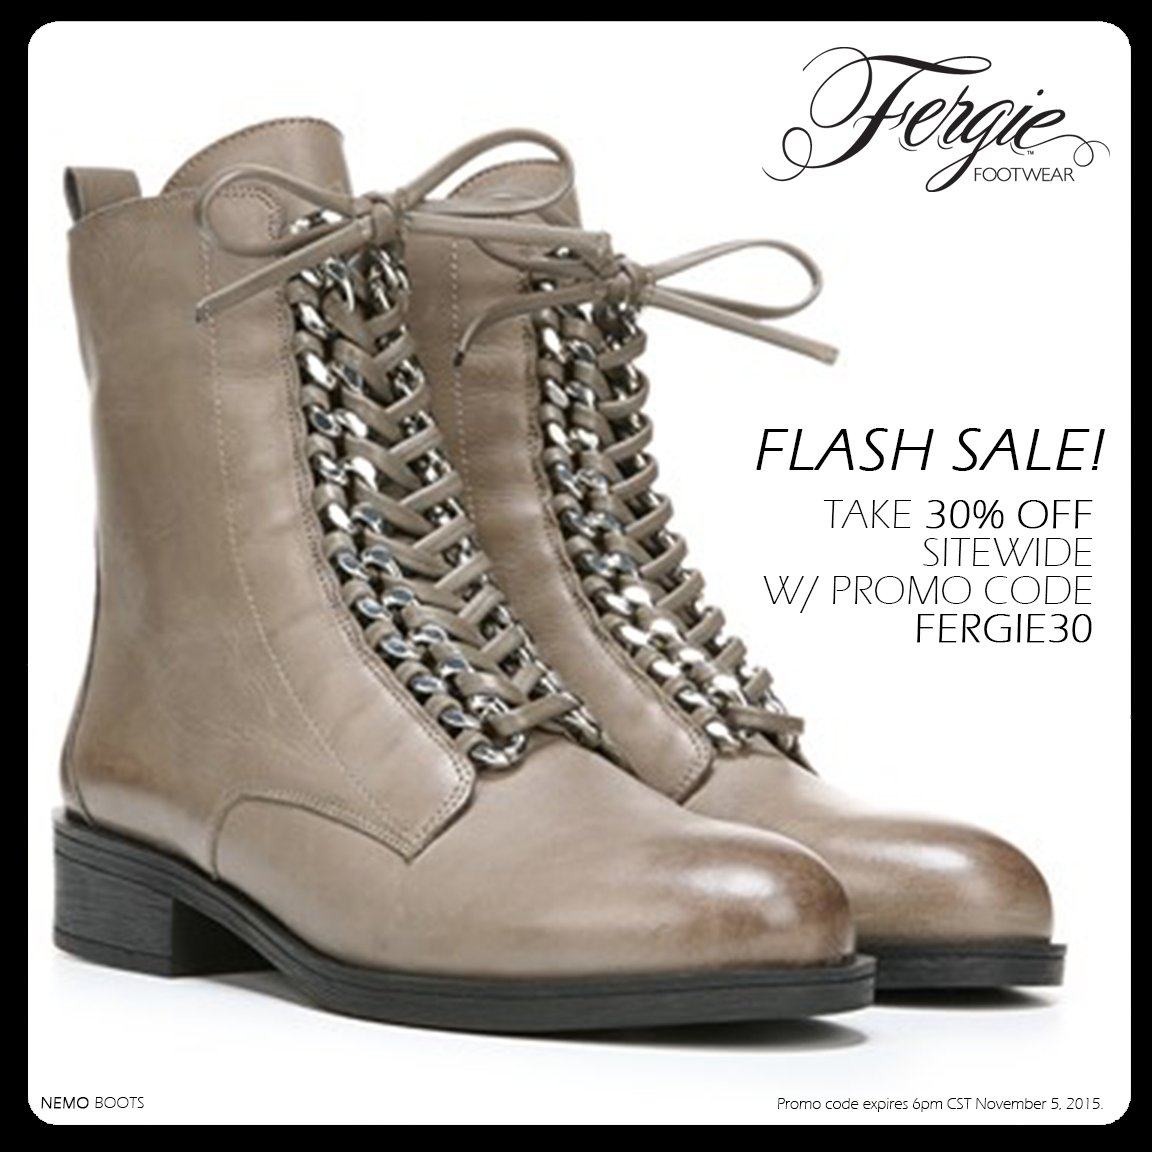 RT @FergieFootwear: #FlashSale! Save 30% on @Fergie #shoes sitewide w/ #promocode FERGIE30 til 6pm CT. #shoesale https://t.co/Yji1HckQv2 ht…